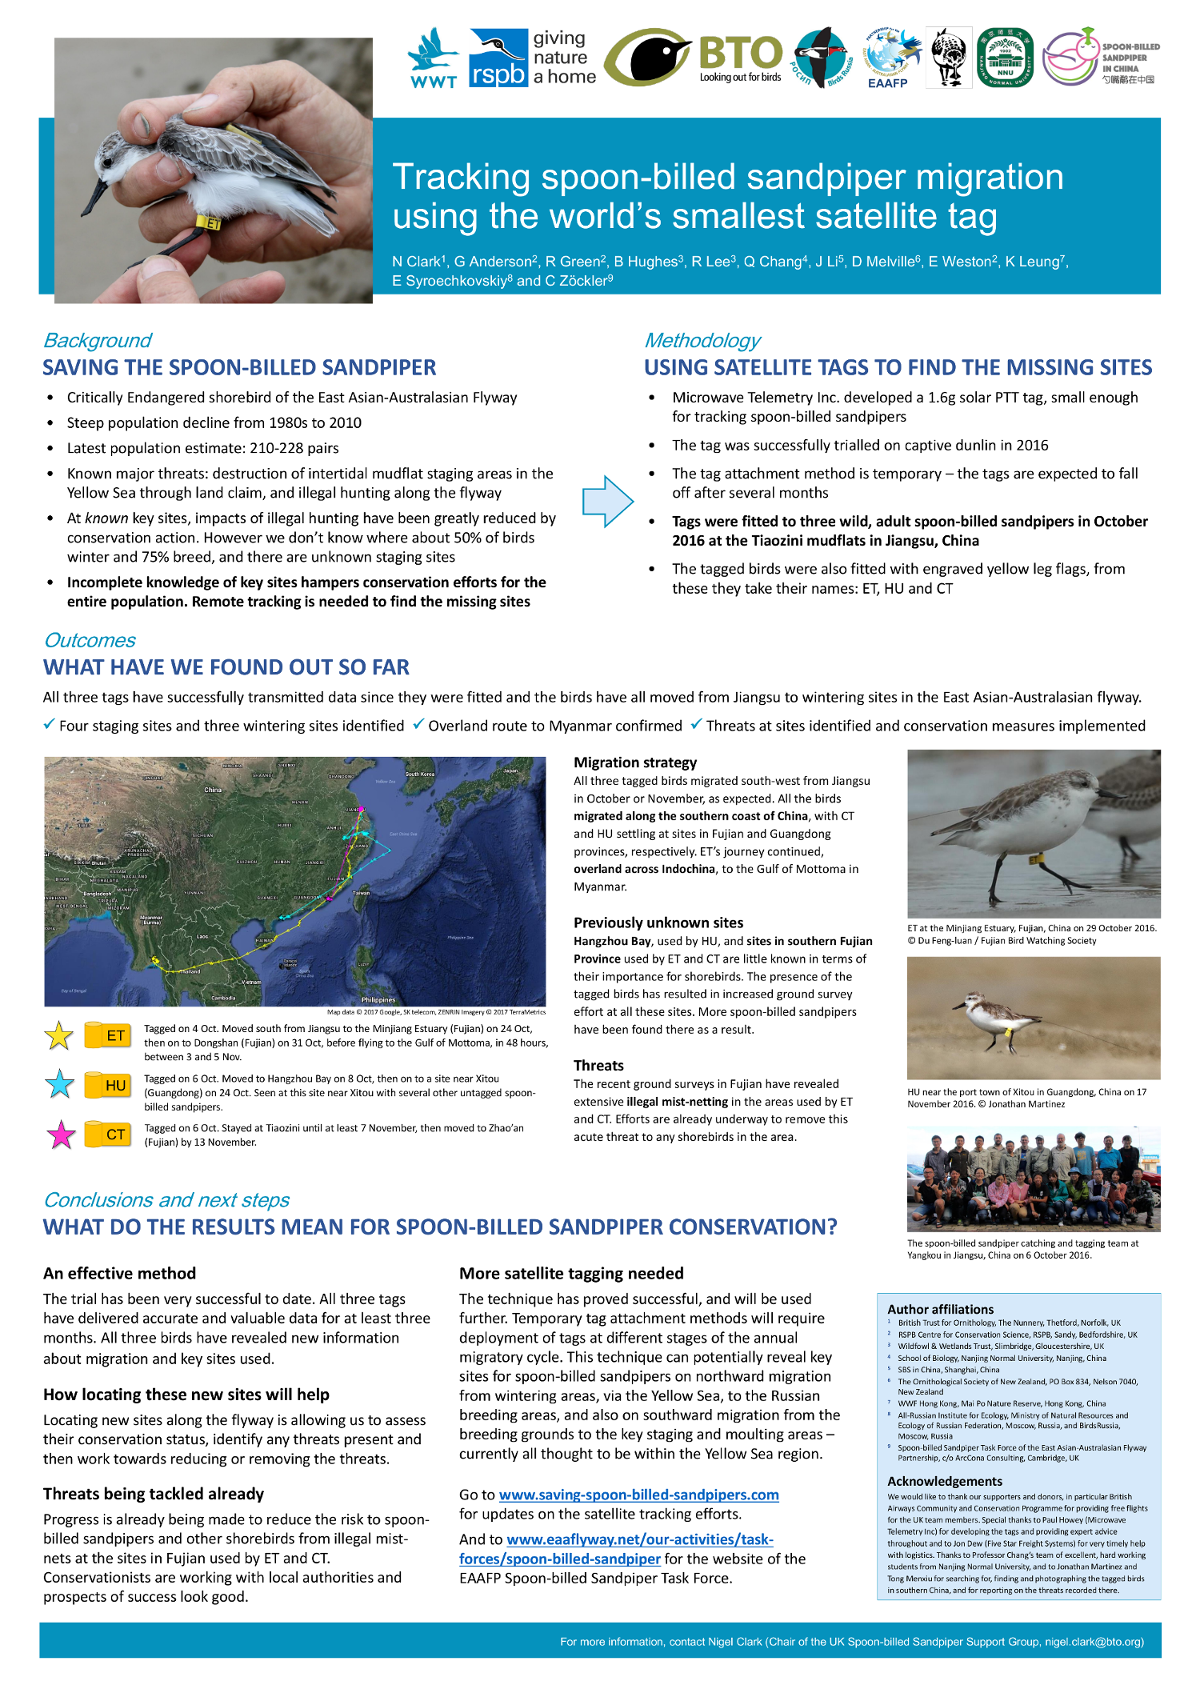 Spoon-billed Sandpiper satellite tracking poster presented at the Arctic Migratory Birds Initiative (AMBI) East Asian-Australasian Flyway workshop in Singapore (8-10 Jan 2017).